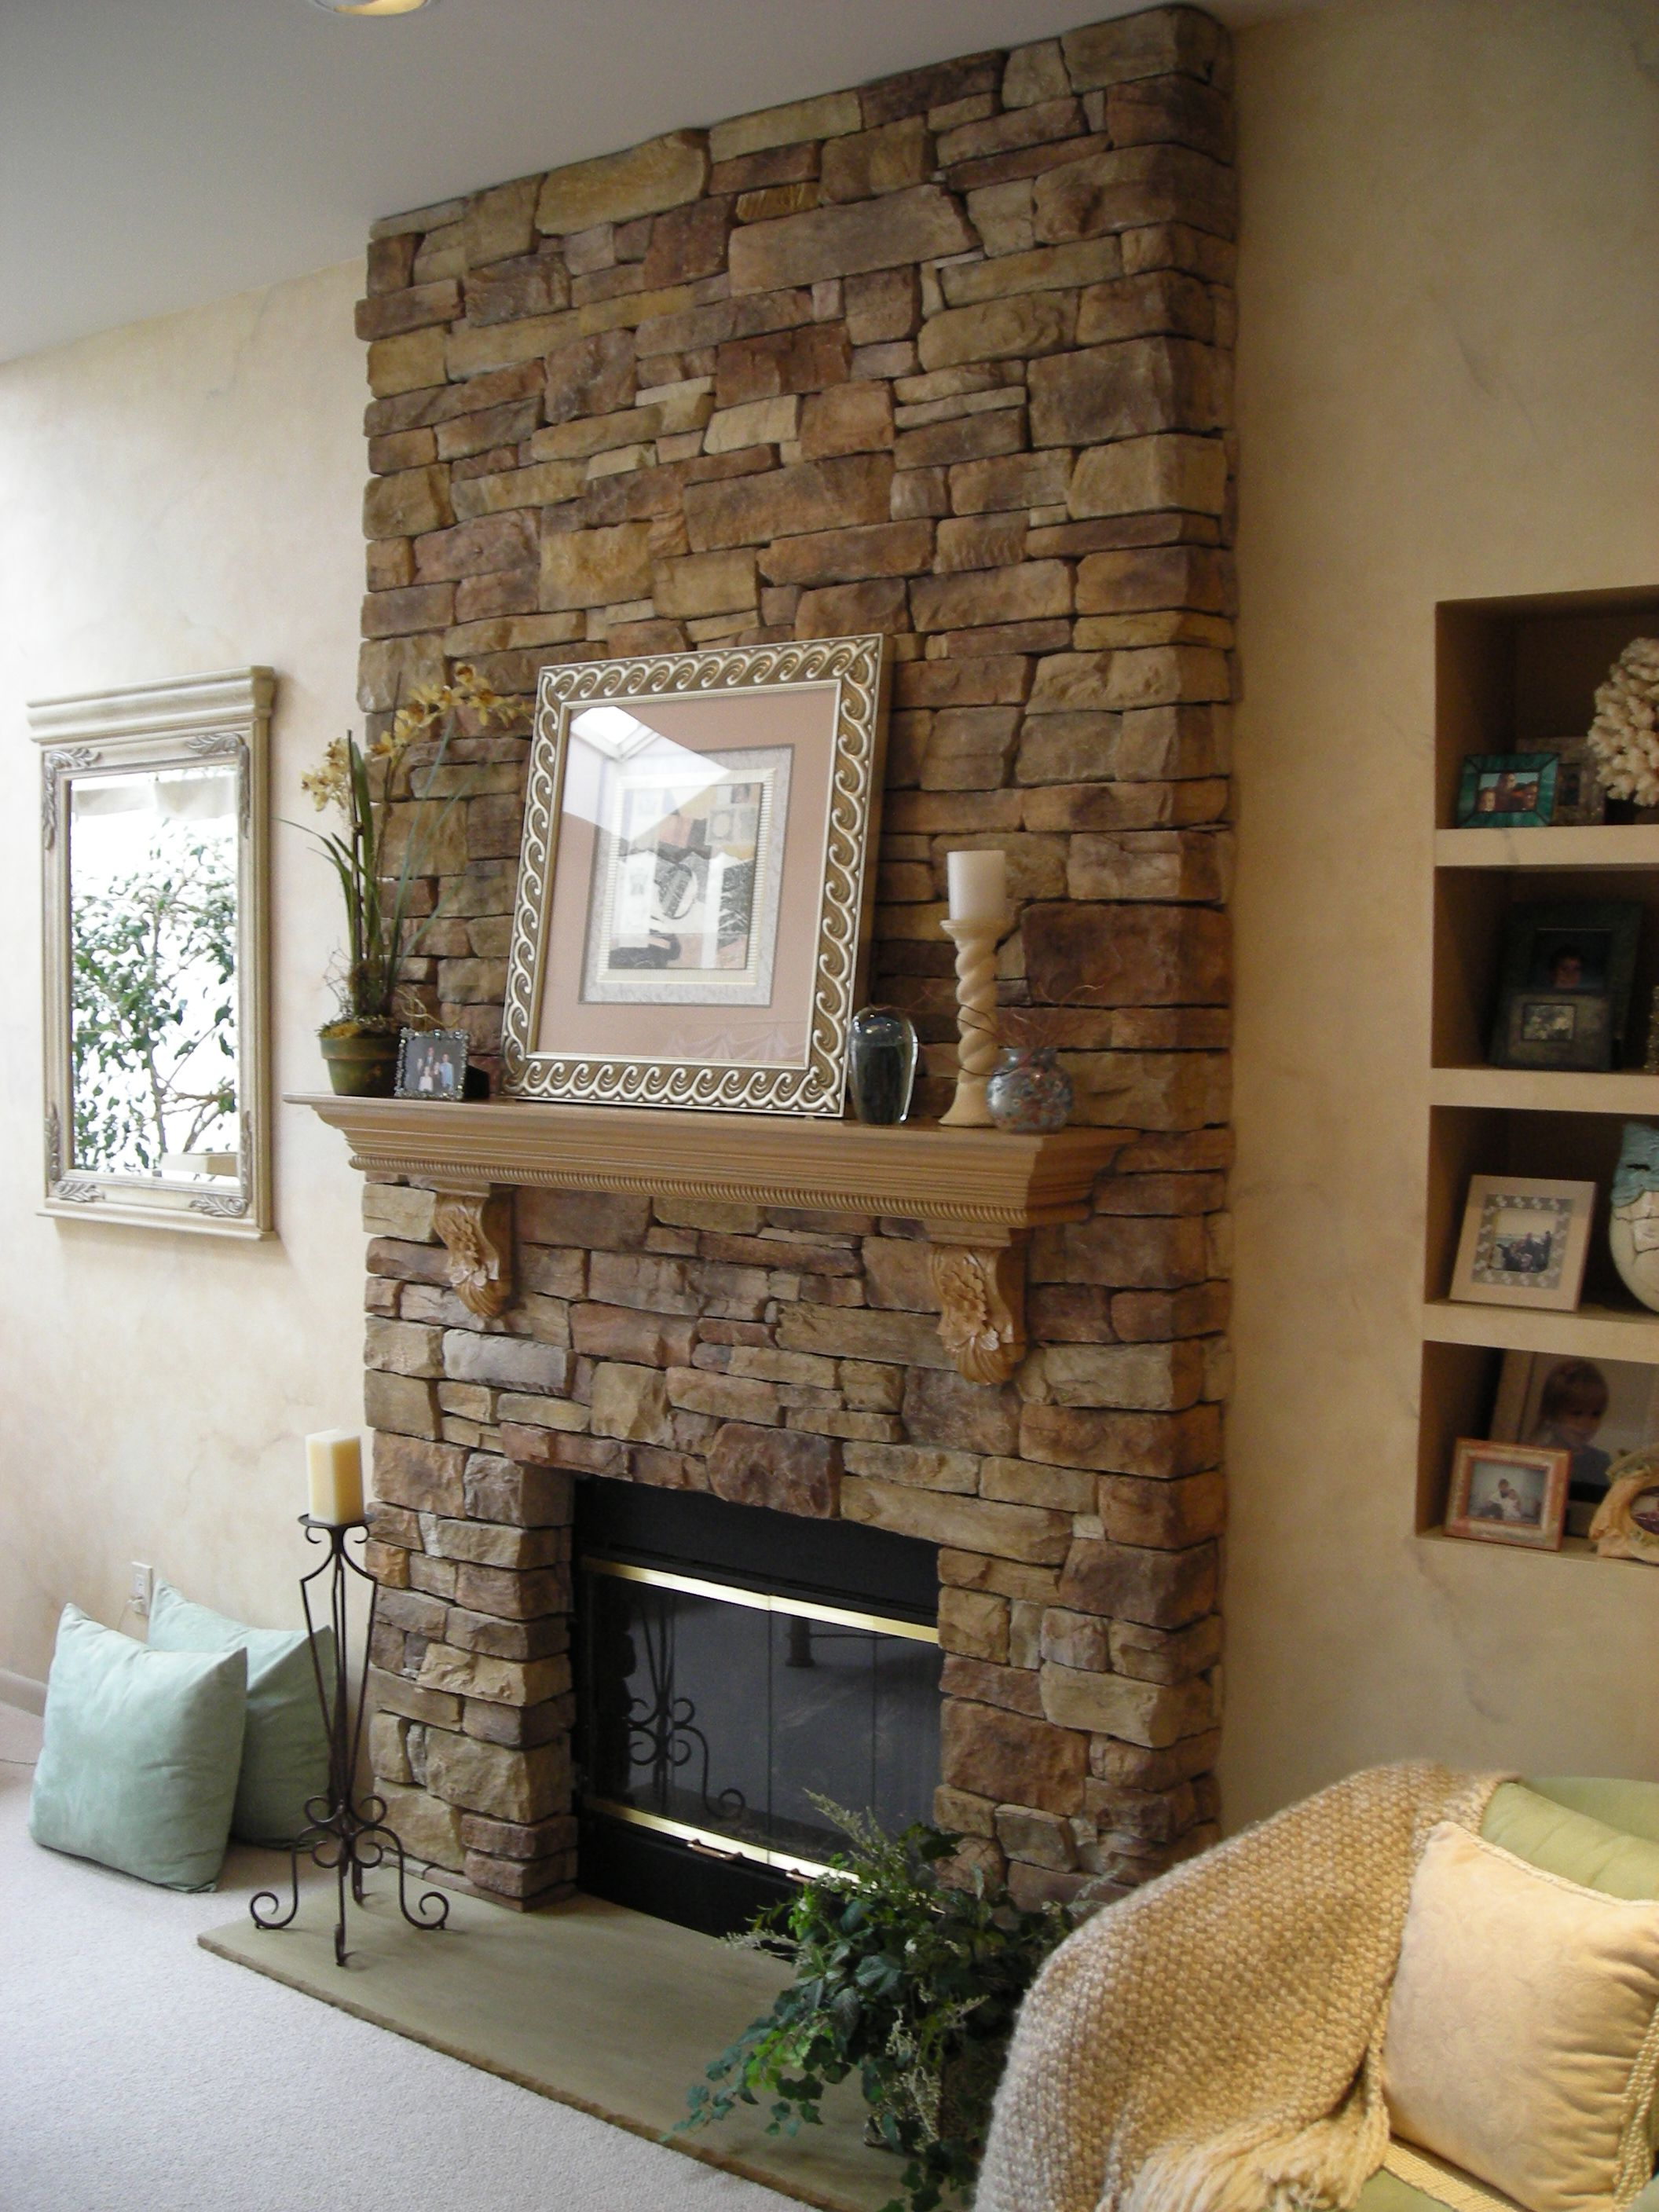 Graceful Family Room With Fireplace Stone Veneer also Wooden Shelve Design